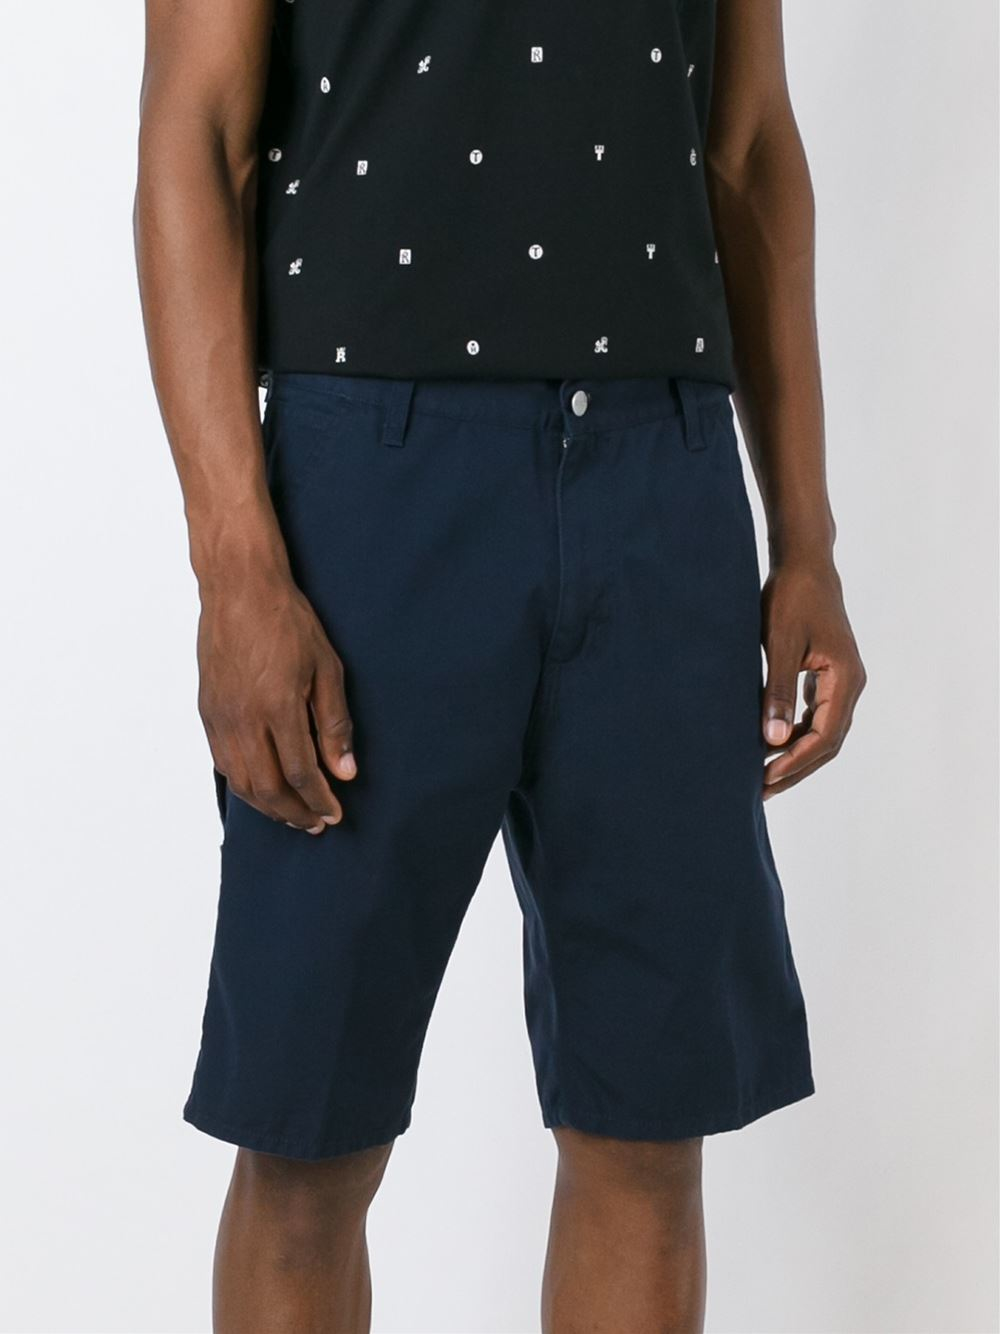 Carhartt Classic Shorts In Blue For Men Lyst